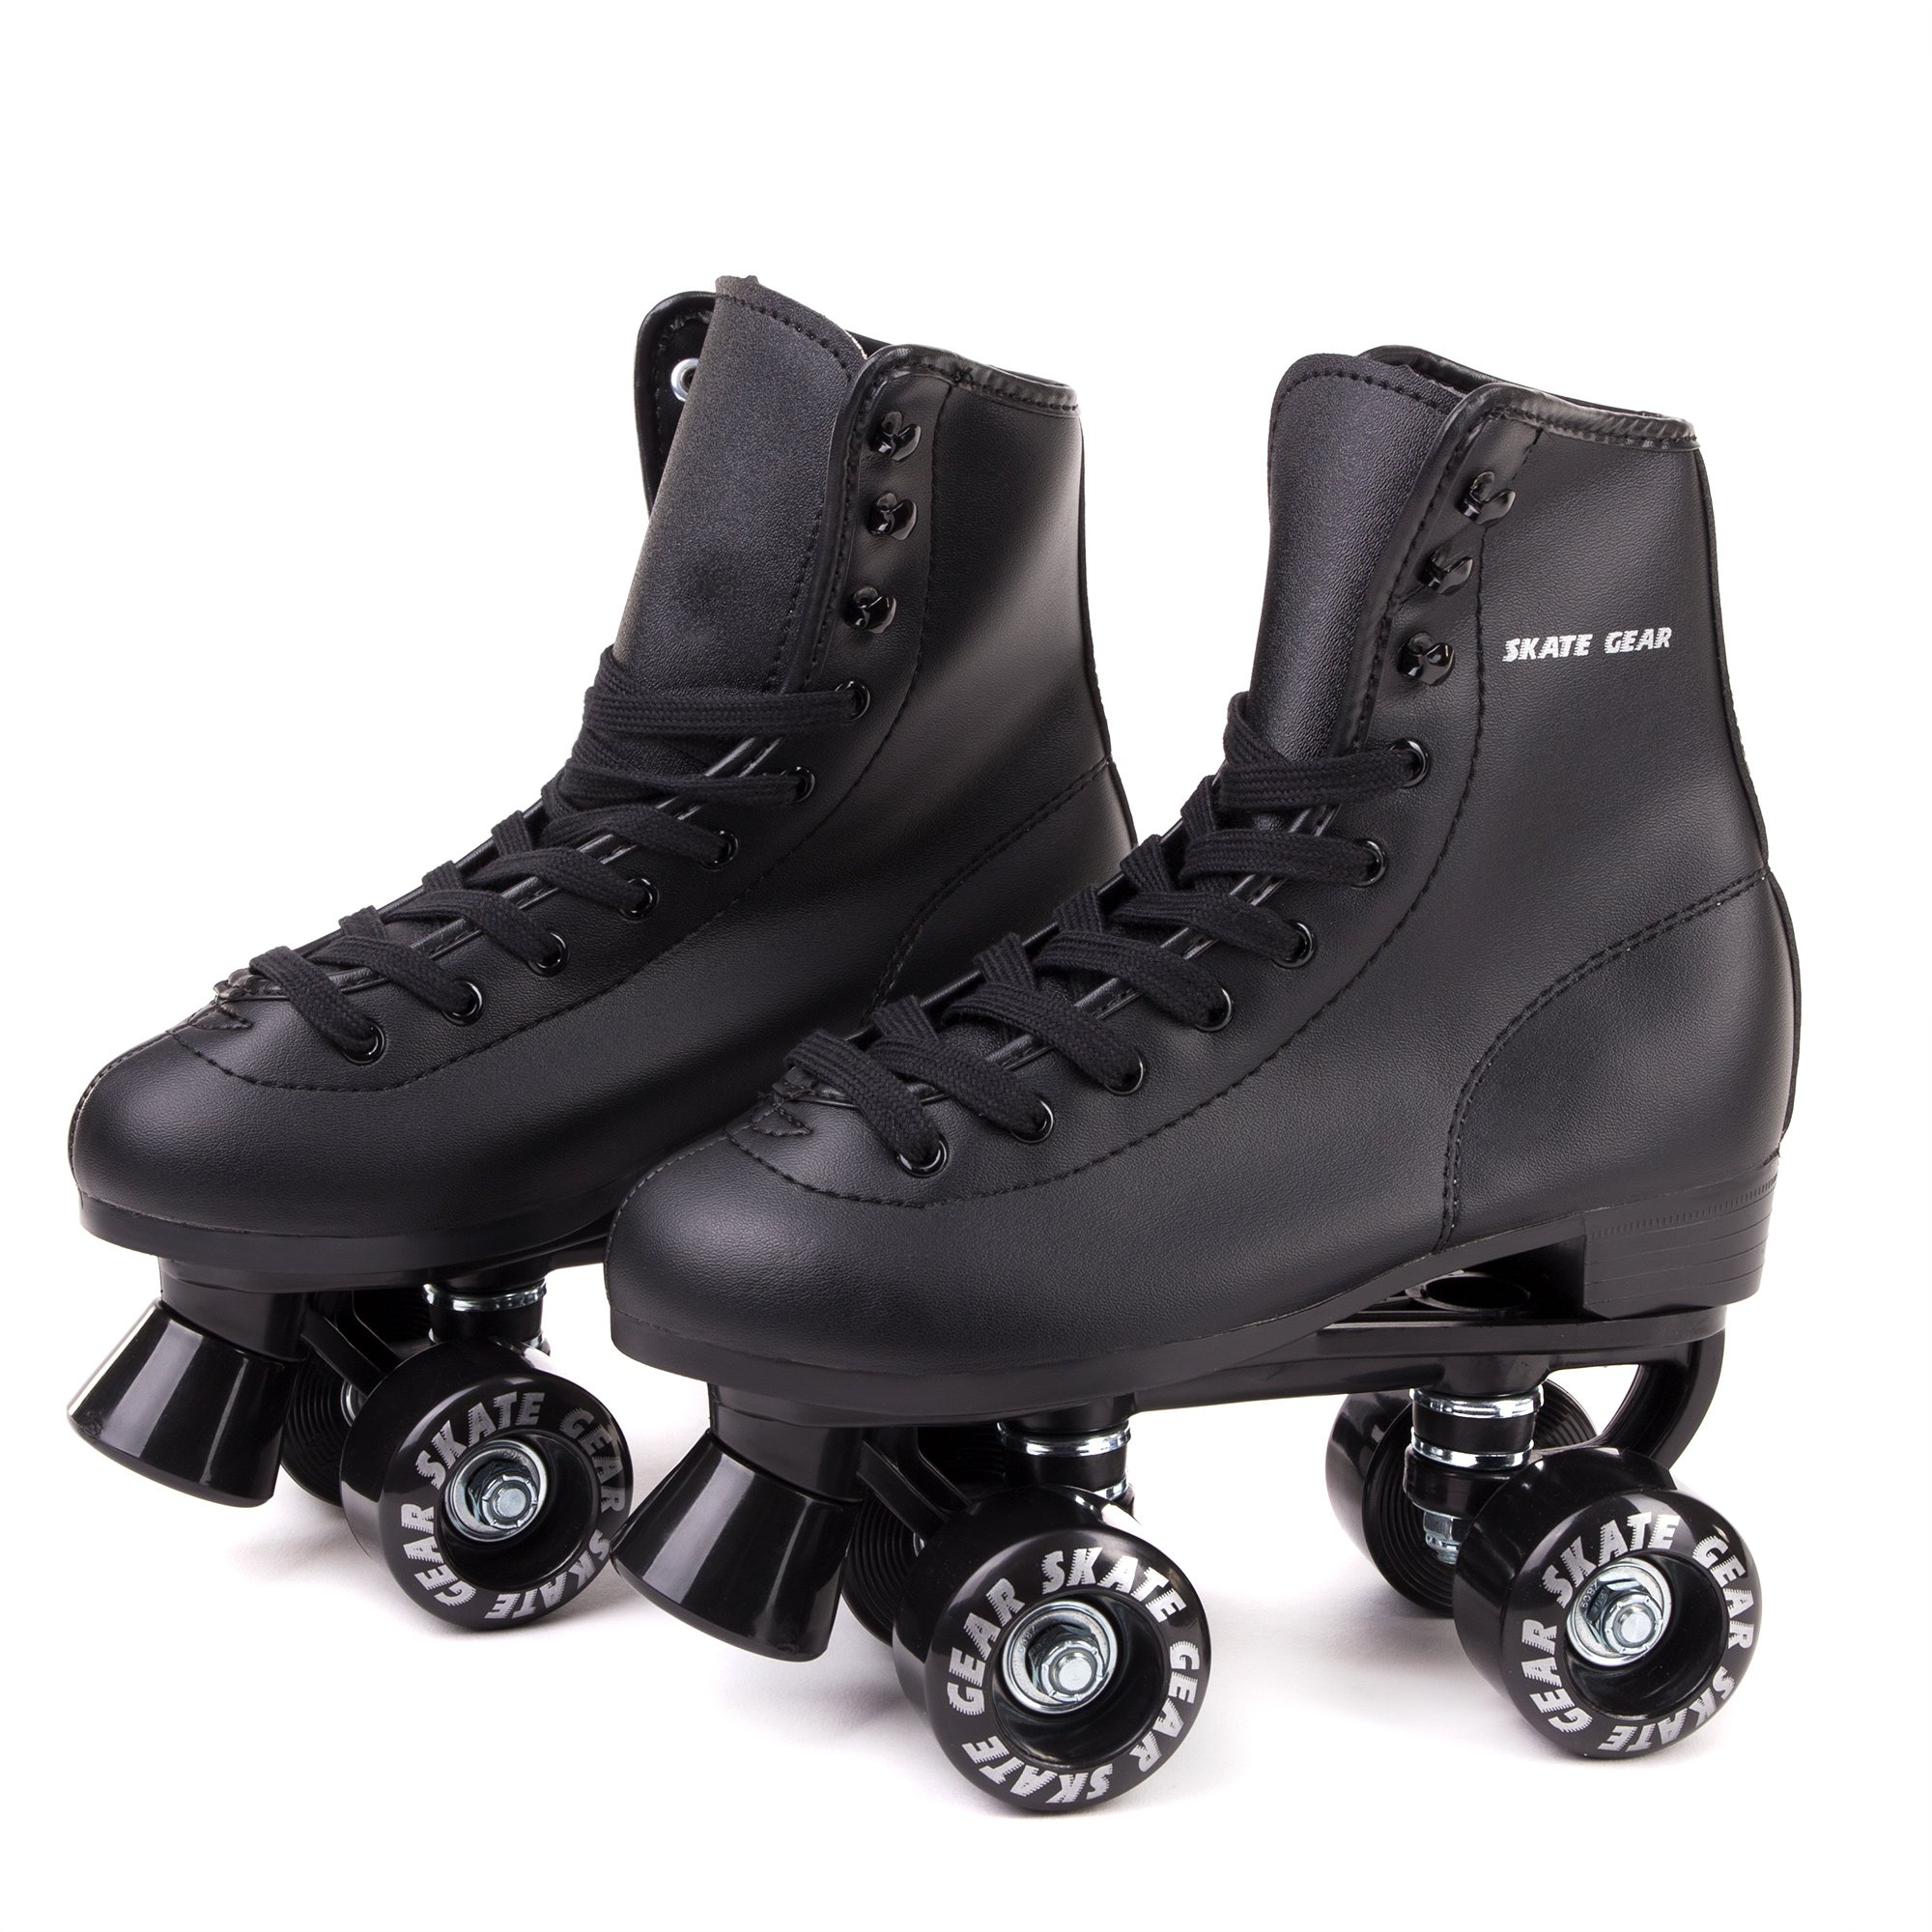 Skate Gear Soft Boot Roller Skate, Retro Fashion High Top Design in Faux Leather for Indoor & Outdoor (Classic Black, Men's 7/Women's 8)